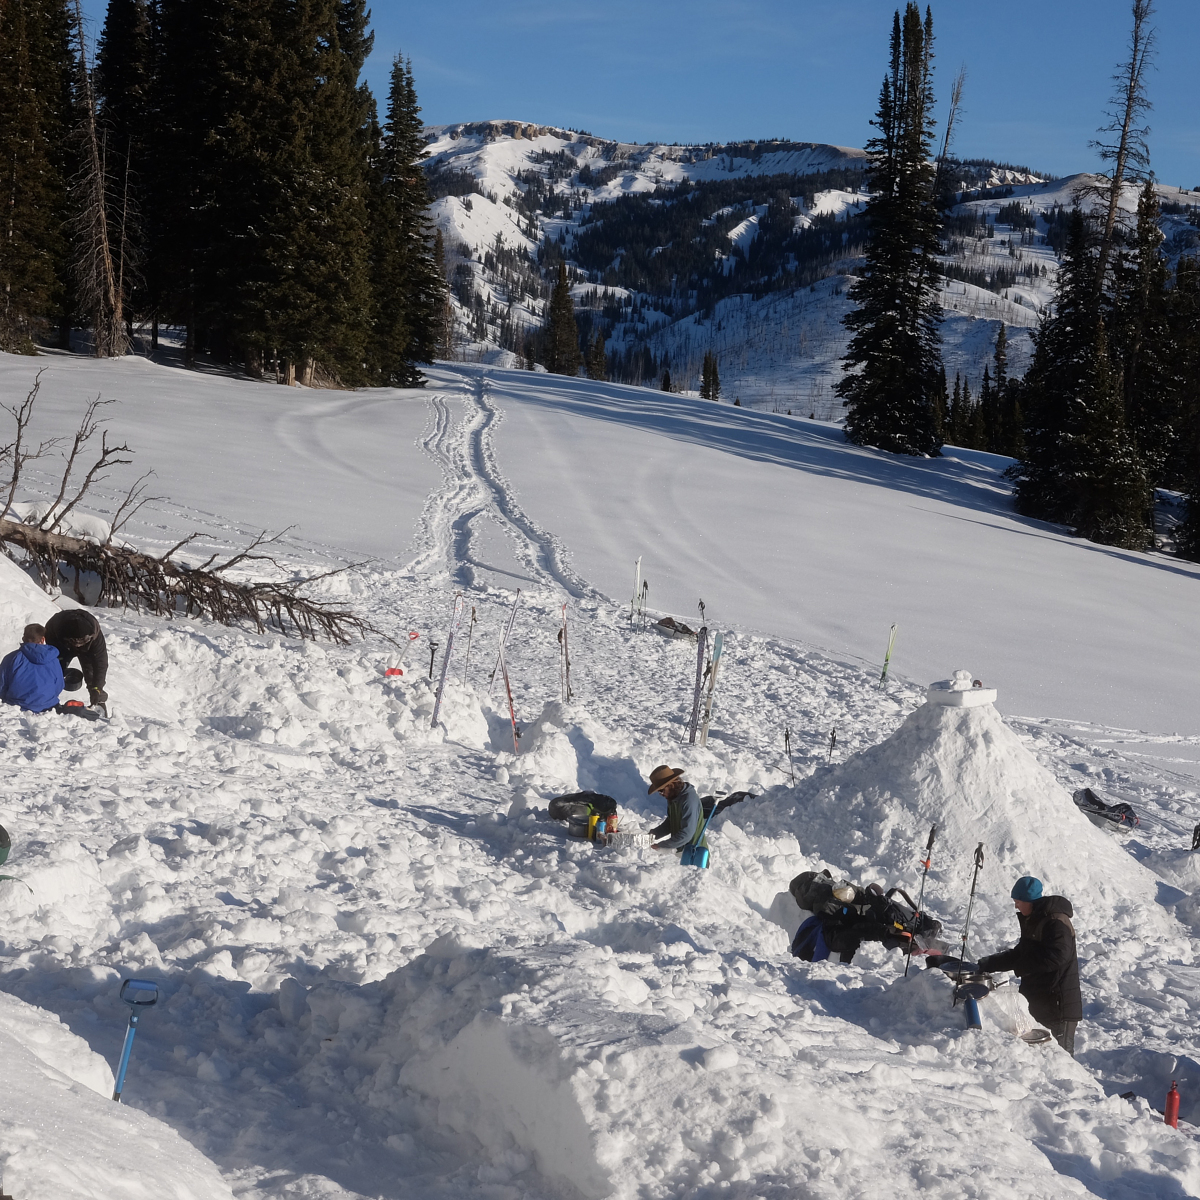 People building a snow shelter while backcountry touring